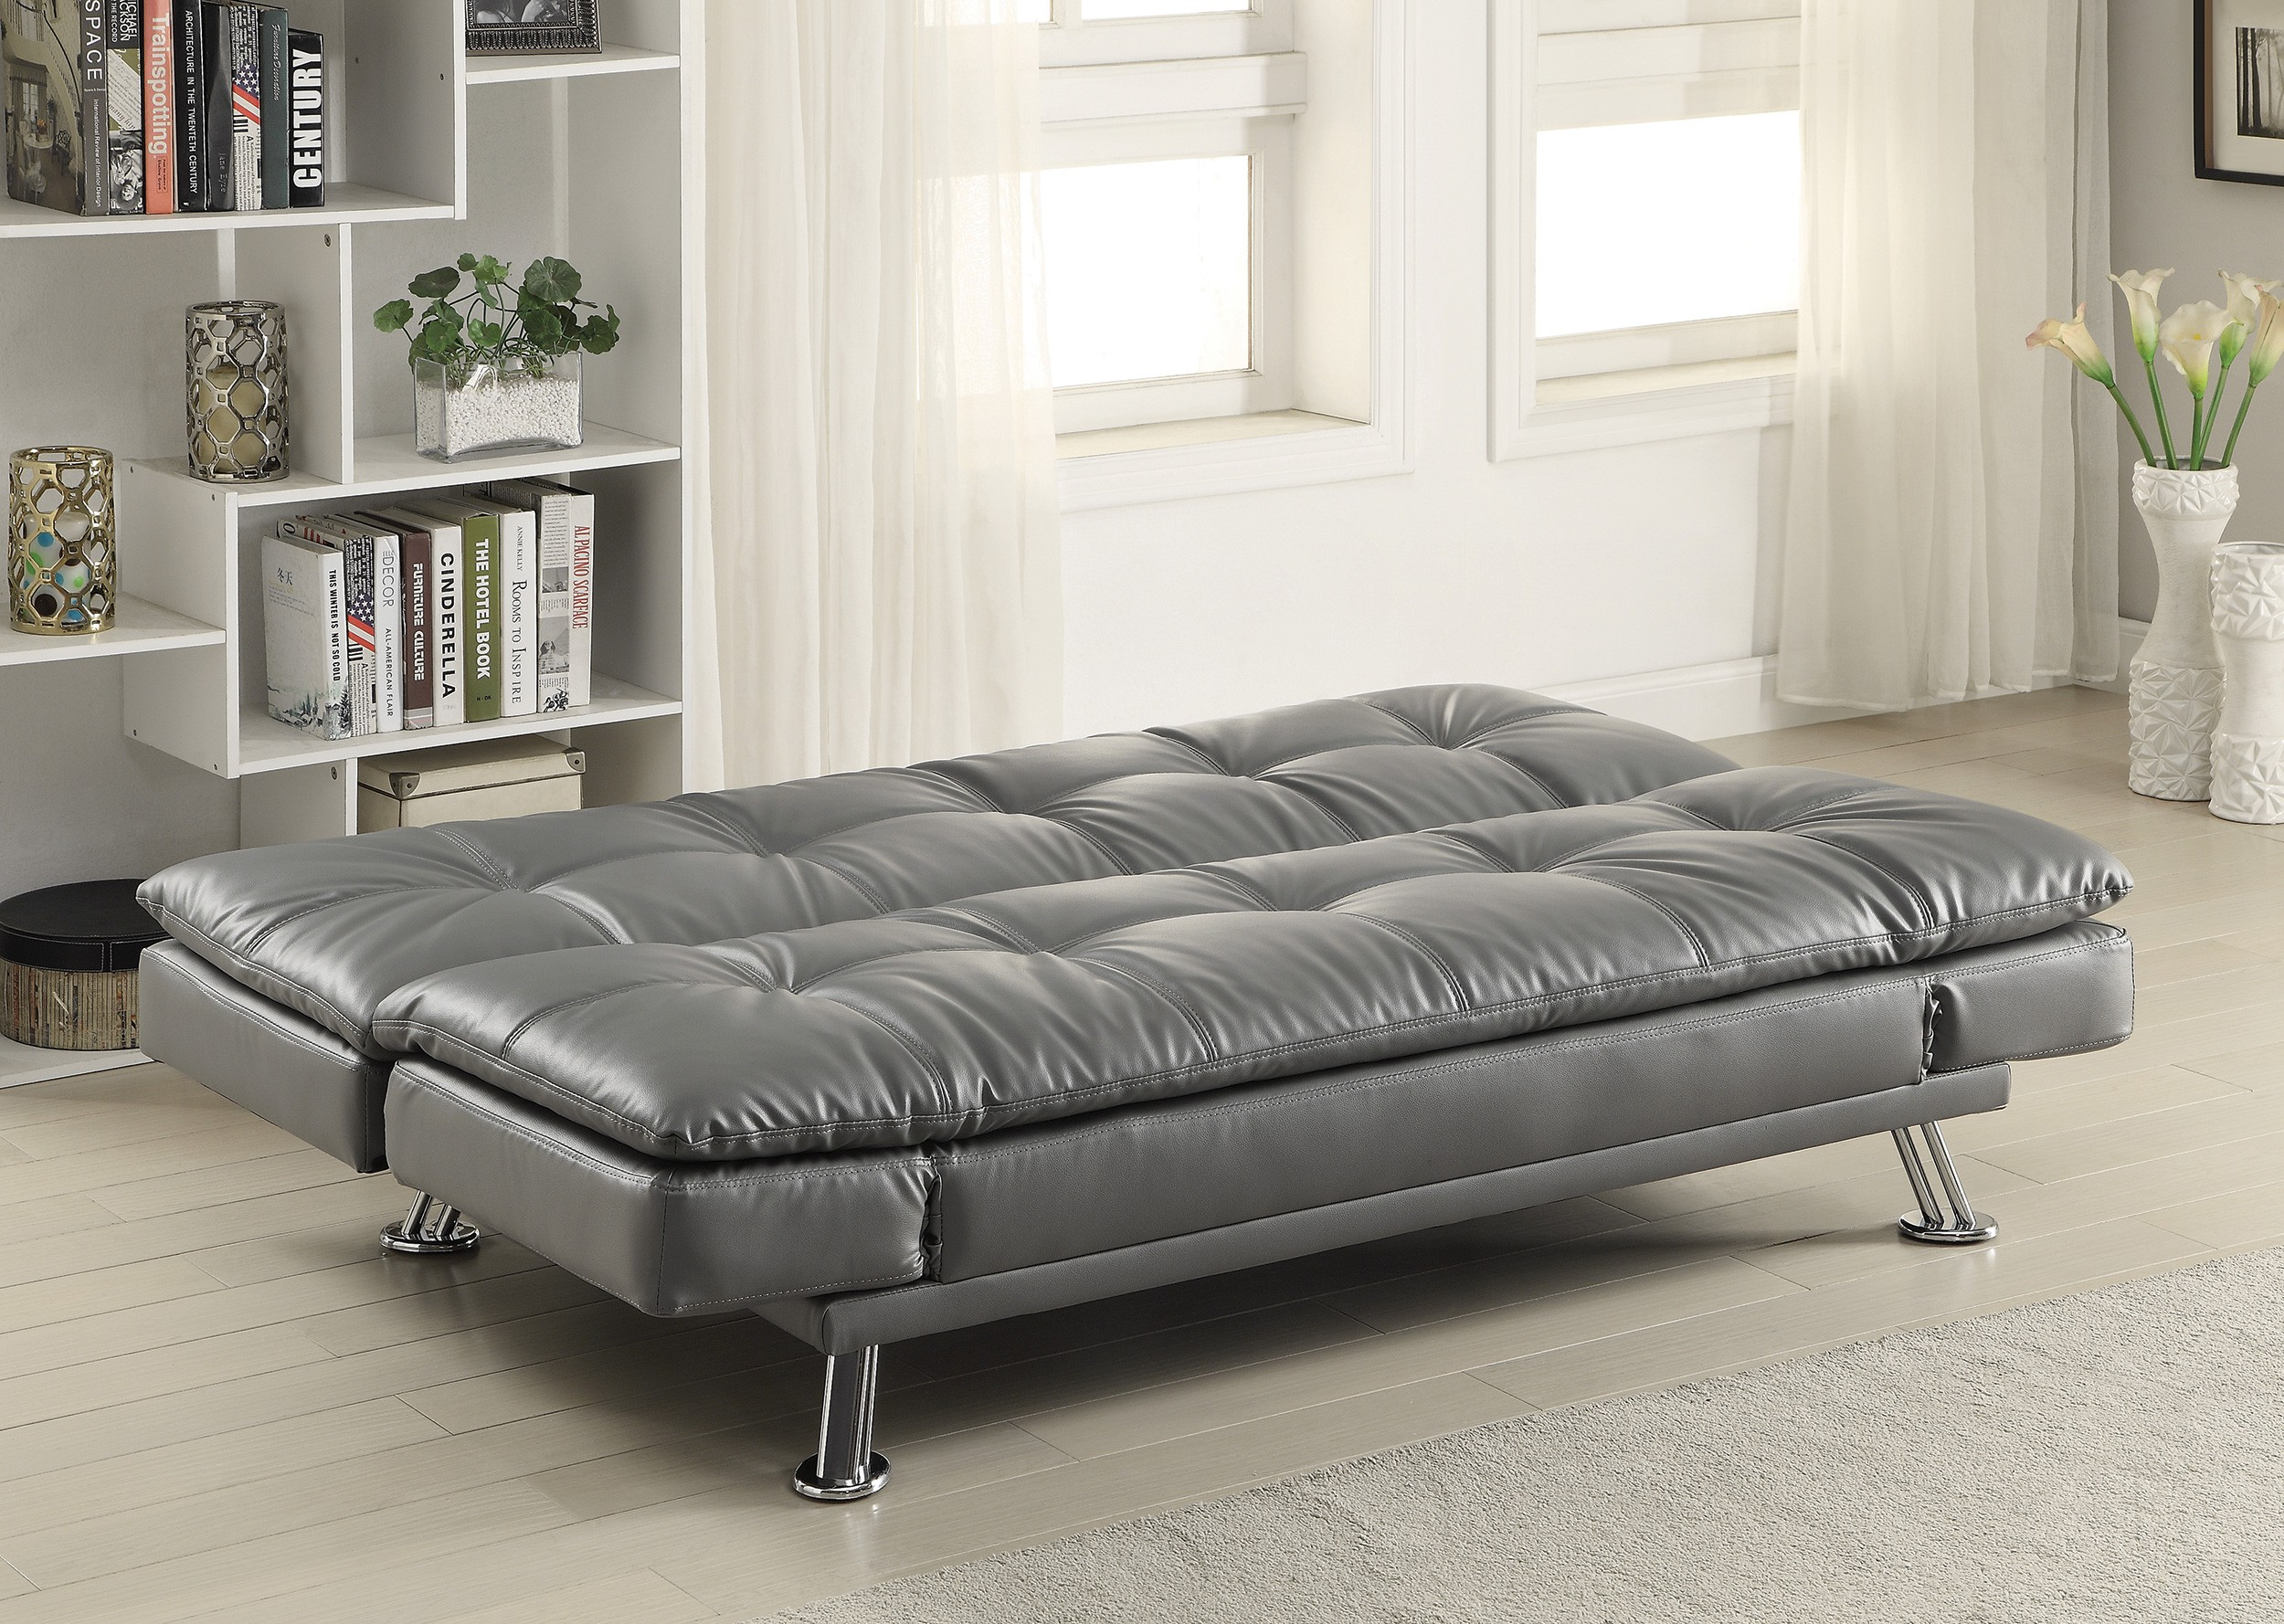 Storage Bed Chaise Sofa Sofa Bed Grey With Available Matching Chaise And Storage